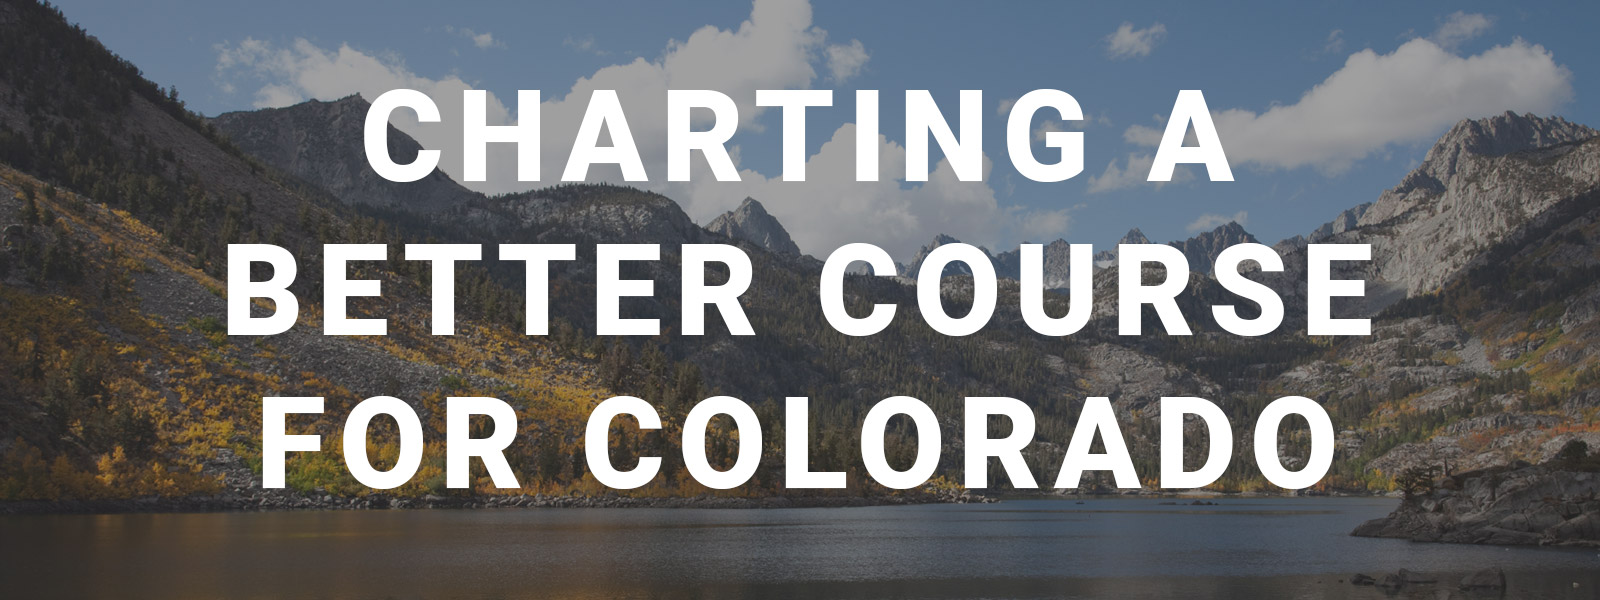 Charting a better course for Colorado